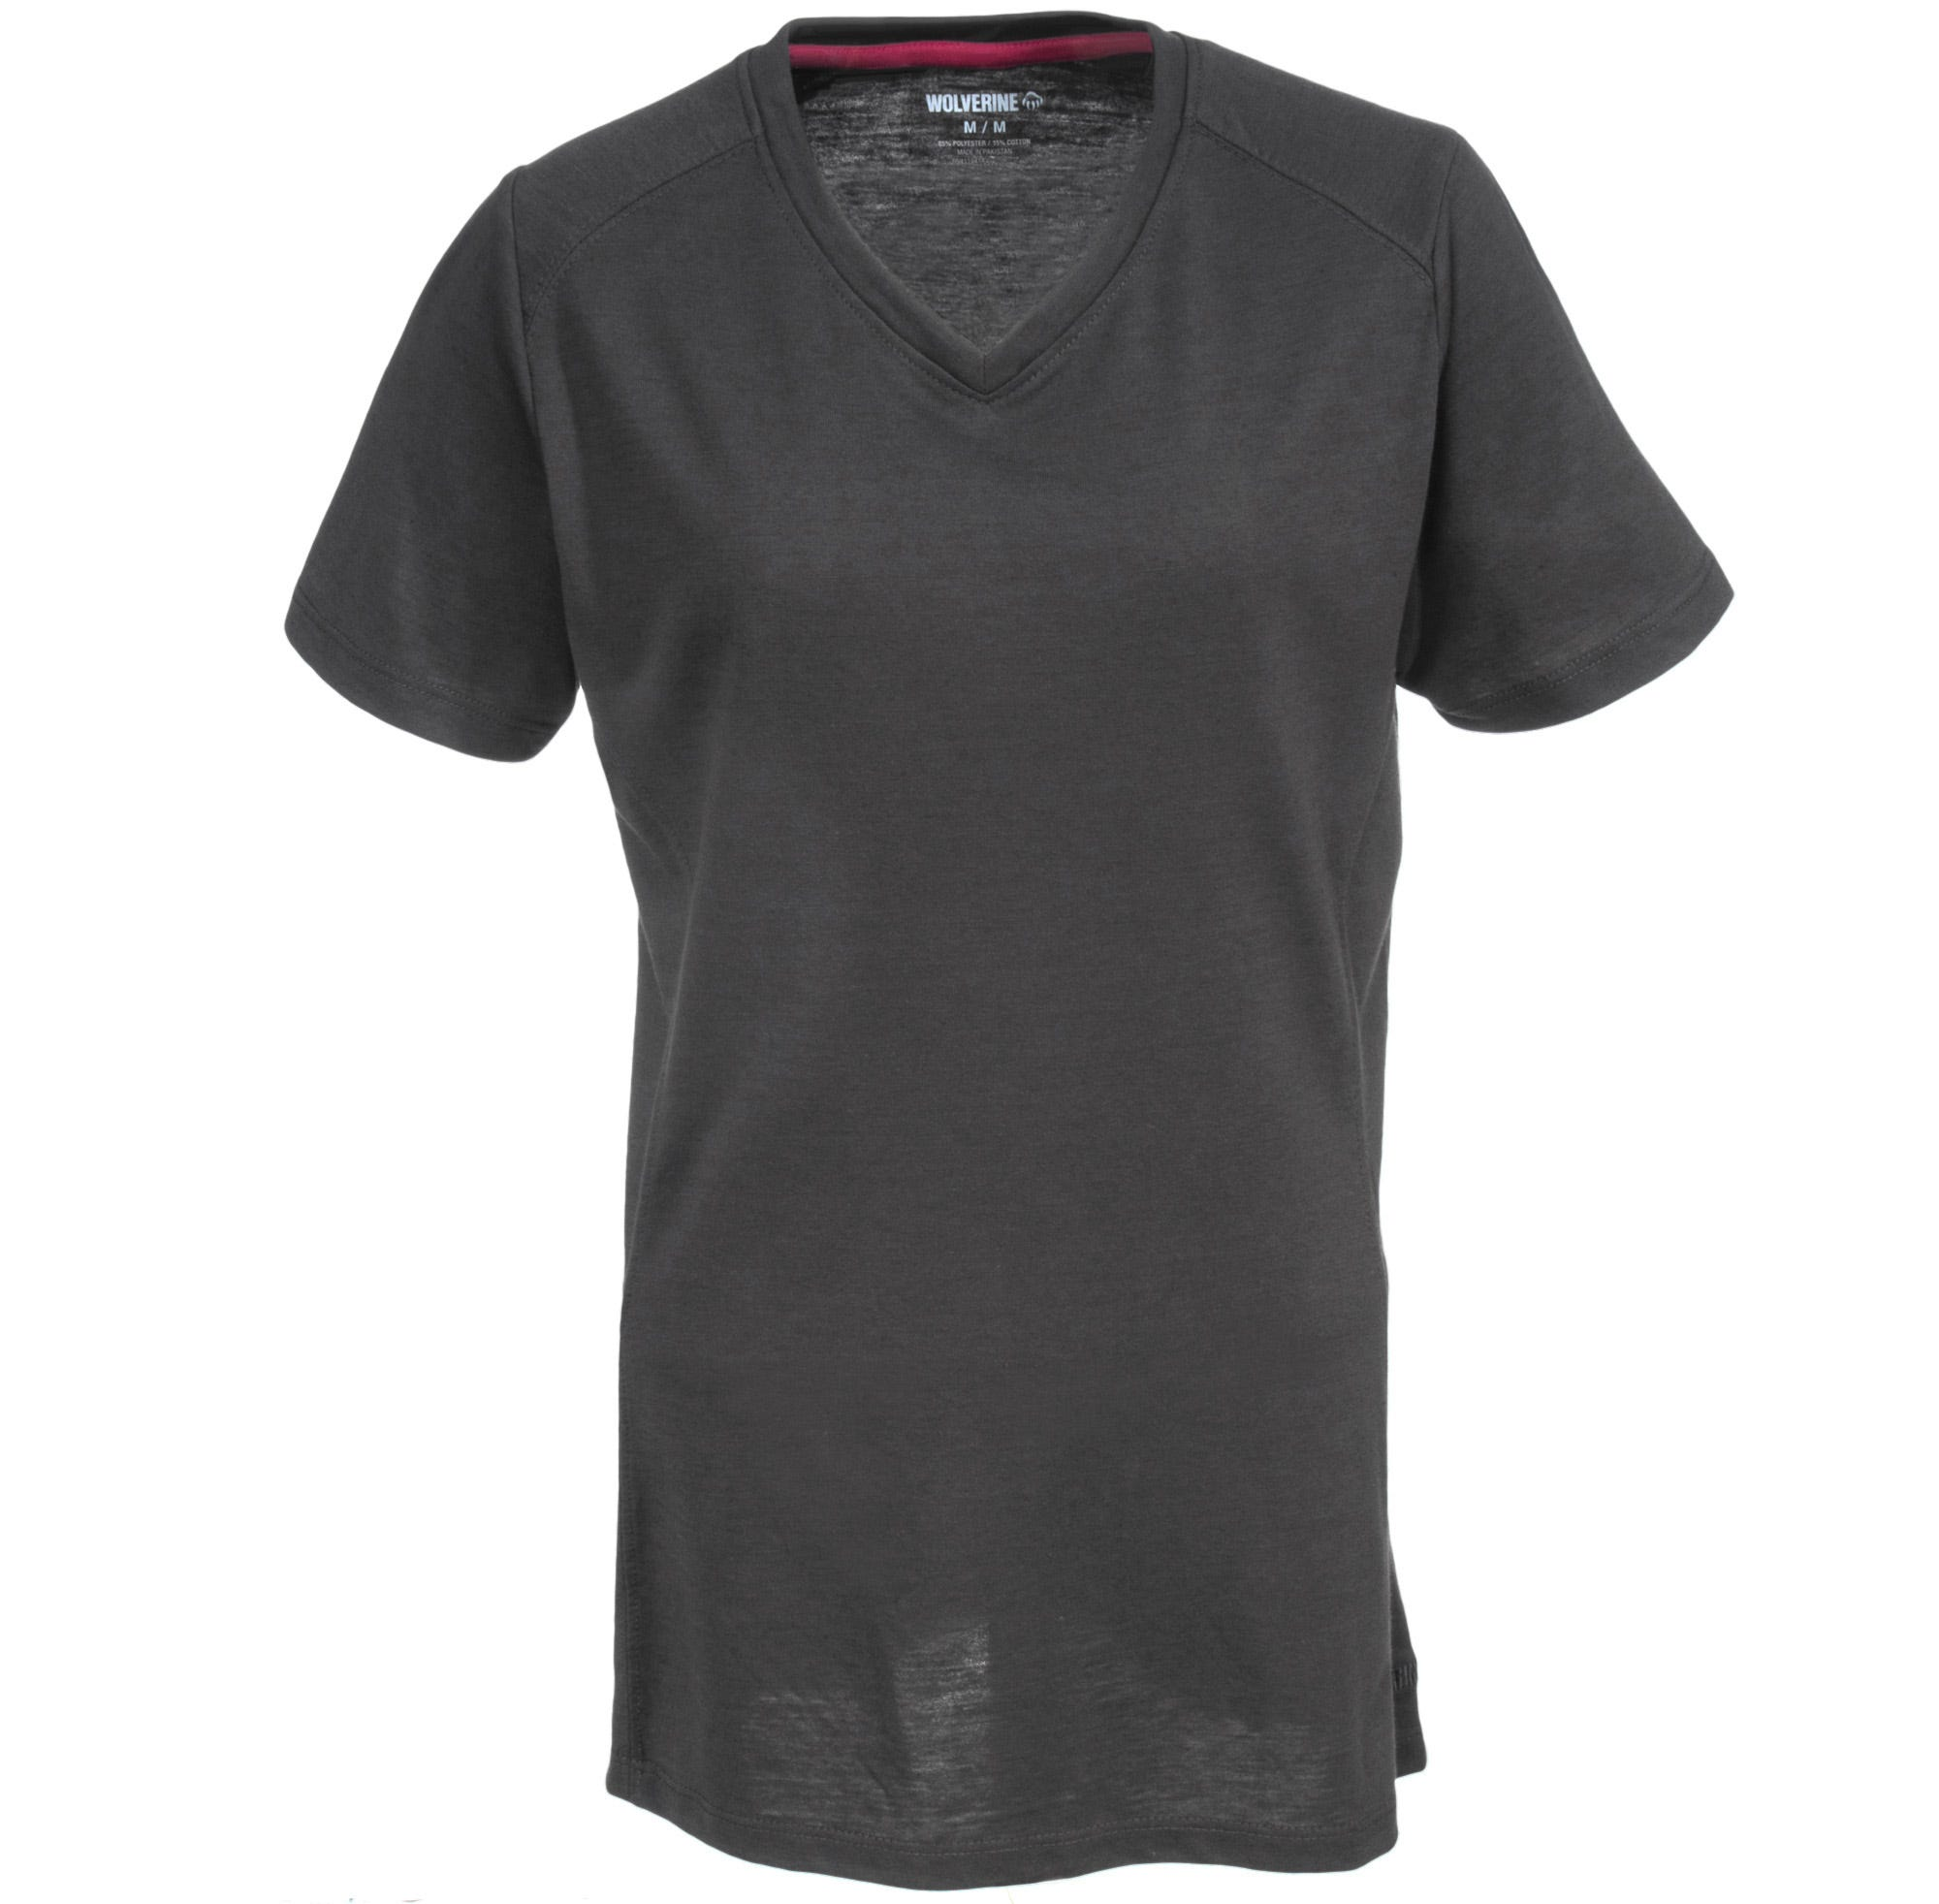 Wolverine W1204590 035 Women's Piper Pewter Grey V-Neck Shirt